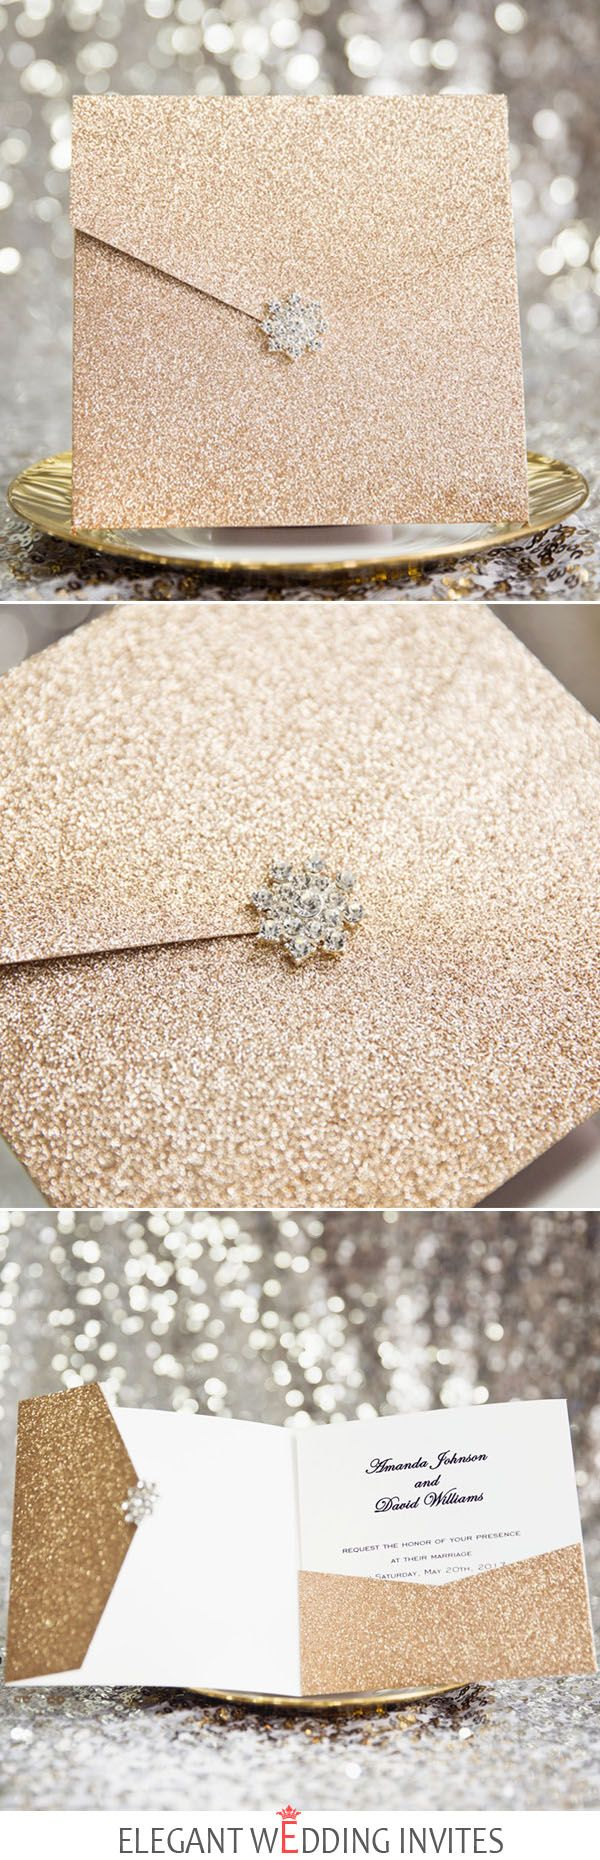 luxurious rose gold glittery glam pocket wedding invitations with rhinestone buckle